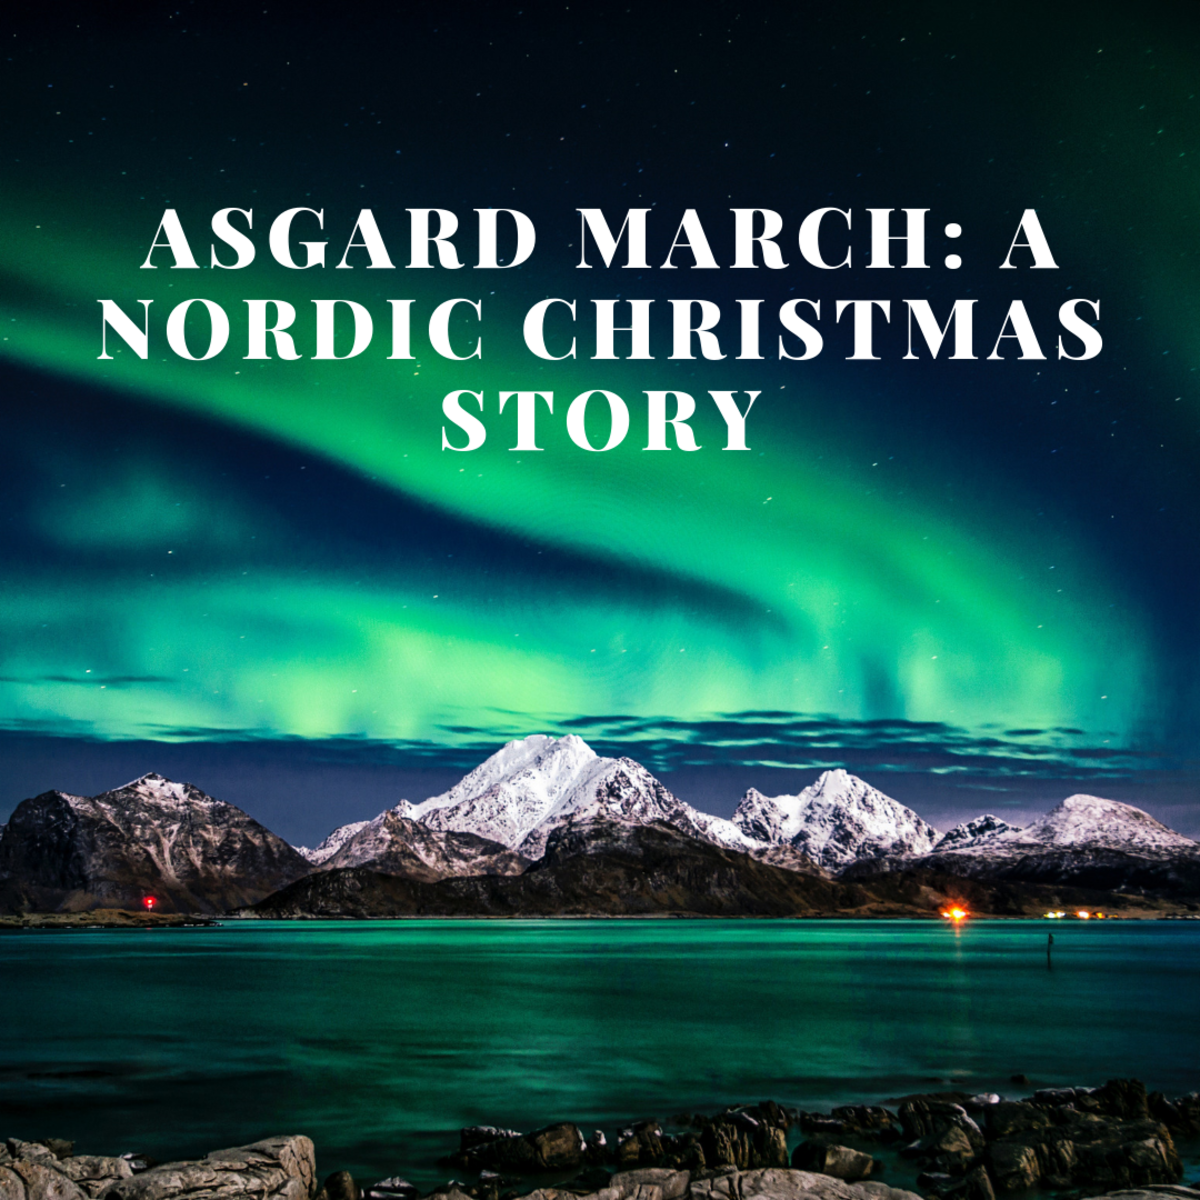 Asgard March is a truly fascinating Nordic holiday. Read on to learn more!